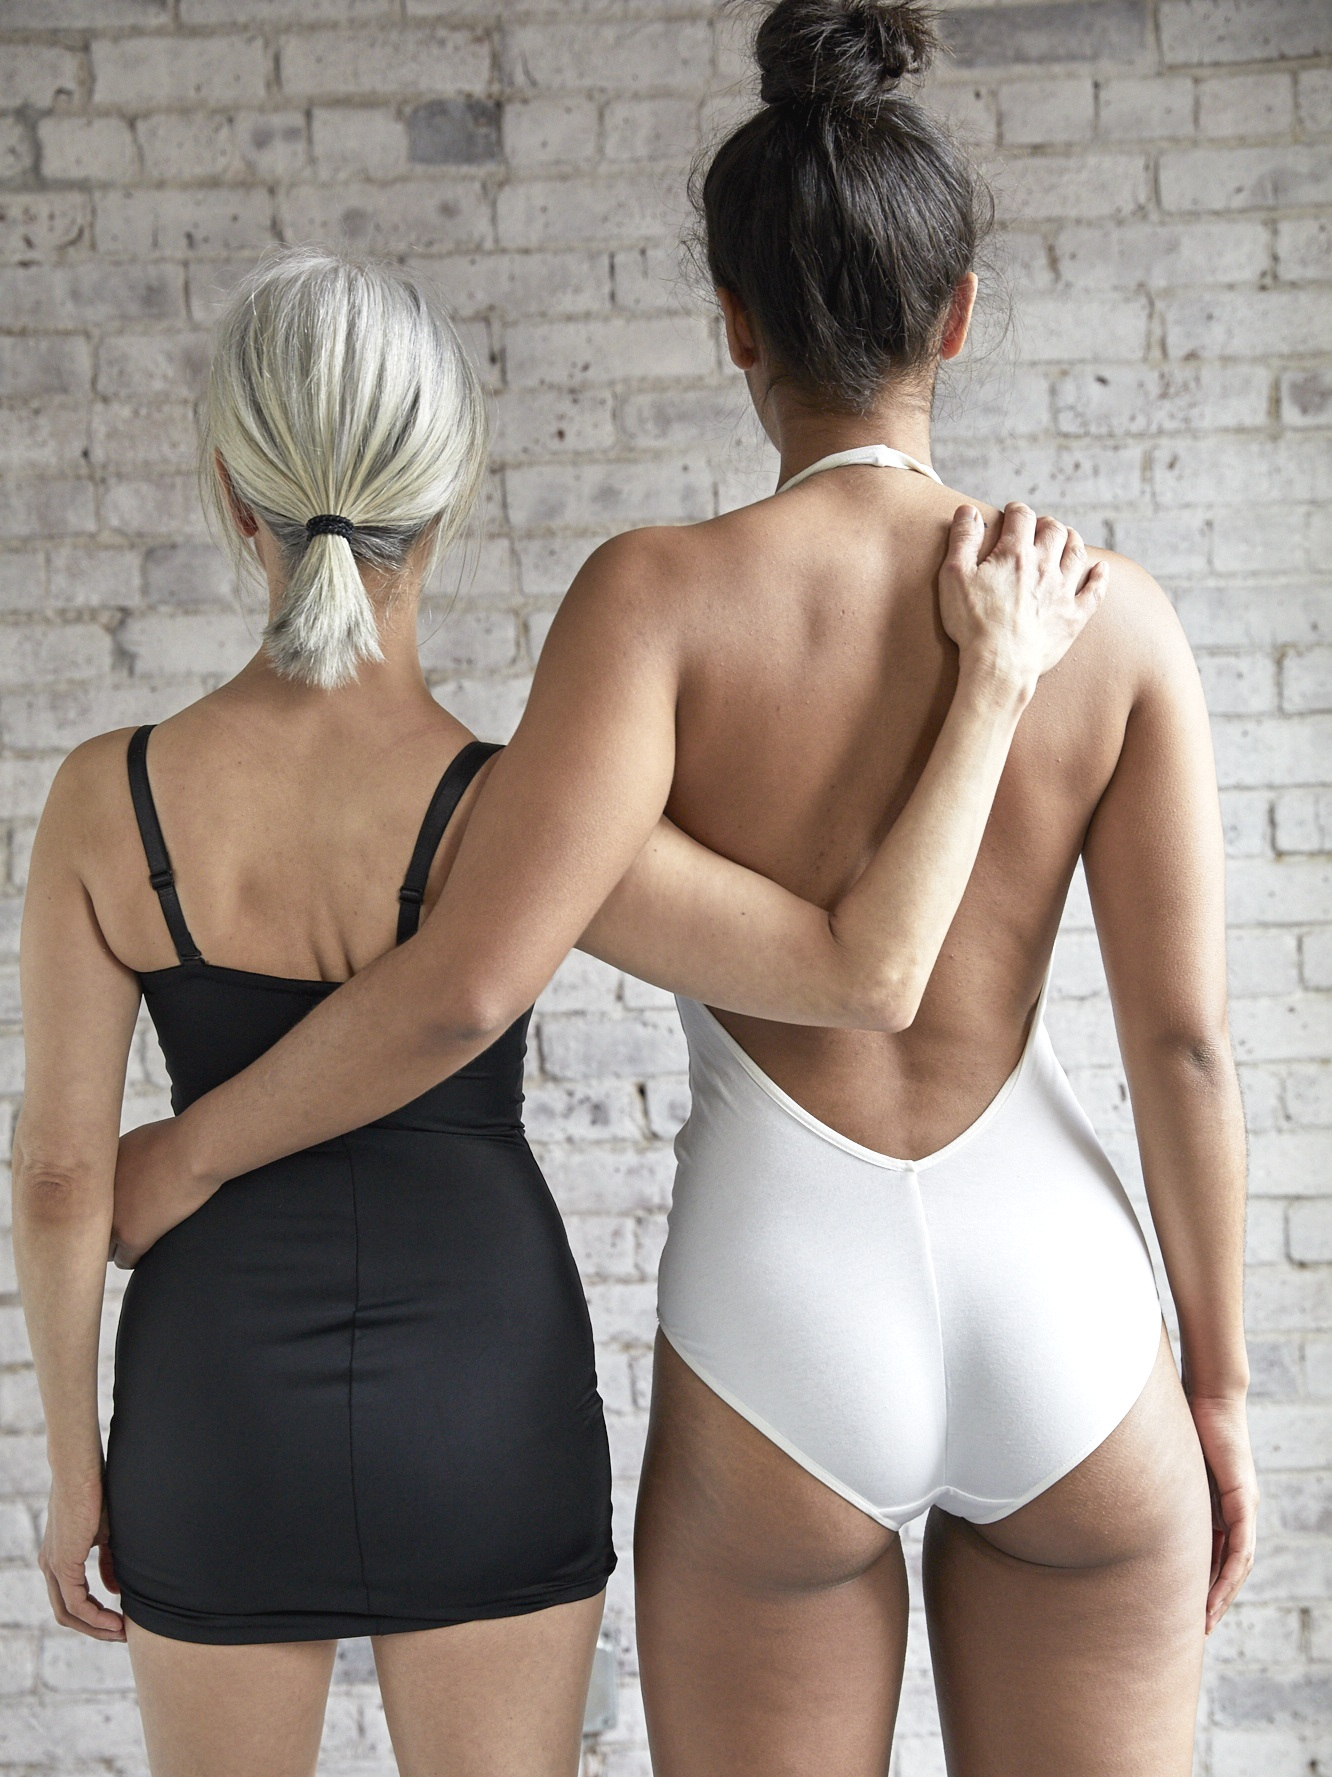 Cryoskin Slimming - This 28 minute treatment helps to naturally destroy fat cells. Whether you're looking to lose fat on your stomach, thighs, arms or back this is the solution for you.The Cryoskin machine is capable of causing thermal shock due to its ability to alternate rapidly between periods of skin warming and cooling. First the heat is applied for 2 minutes on the treatment area. Heating allows for the fat cells to rise to the surface which are then quickly targeted during the 12 minute cold treatment of each area.Your Cryoskin sessions will be every 2 weeks, to ensure your lymphatic system has time to recover leaving you to look and feel amazing.3-6 sessions are recommended for best results.